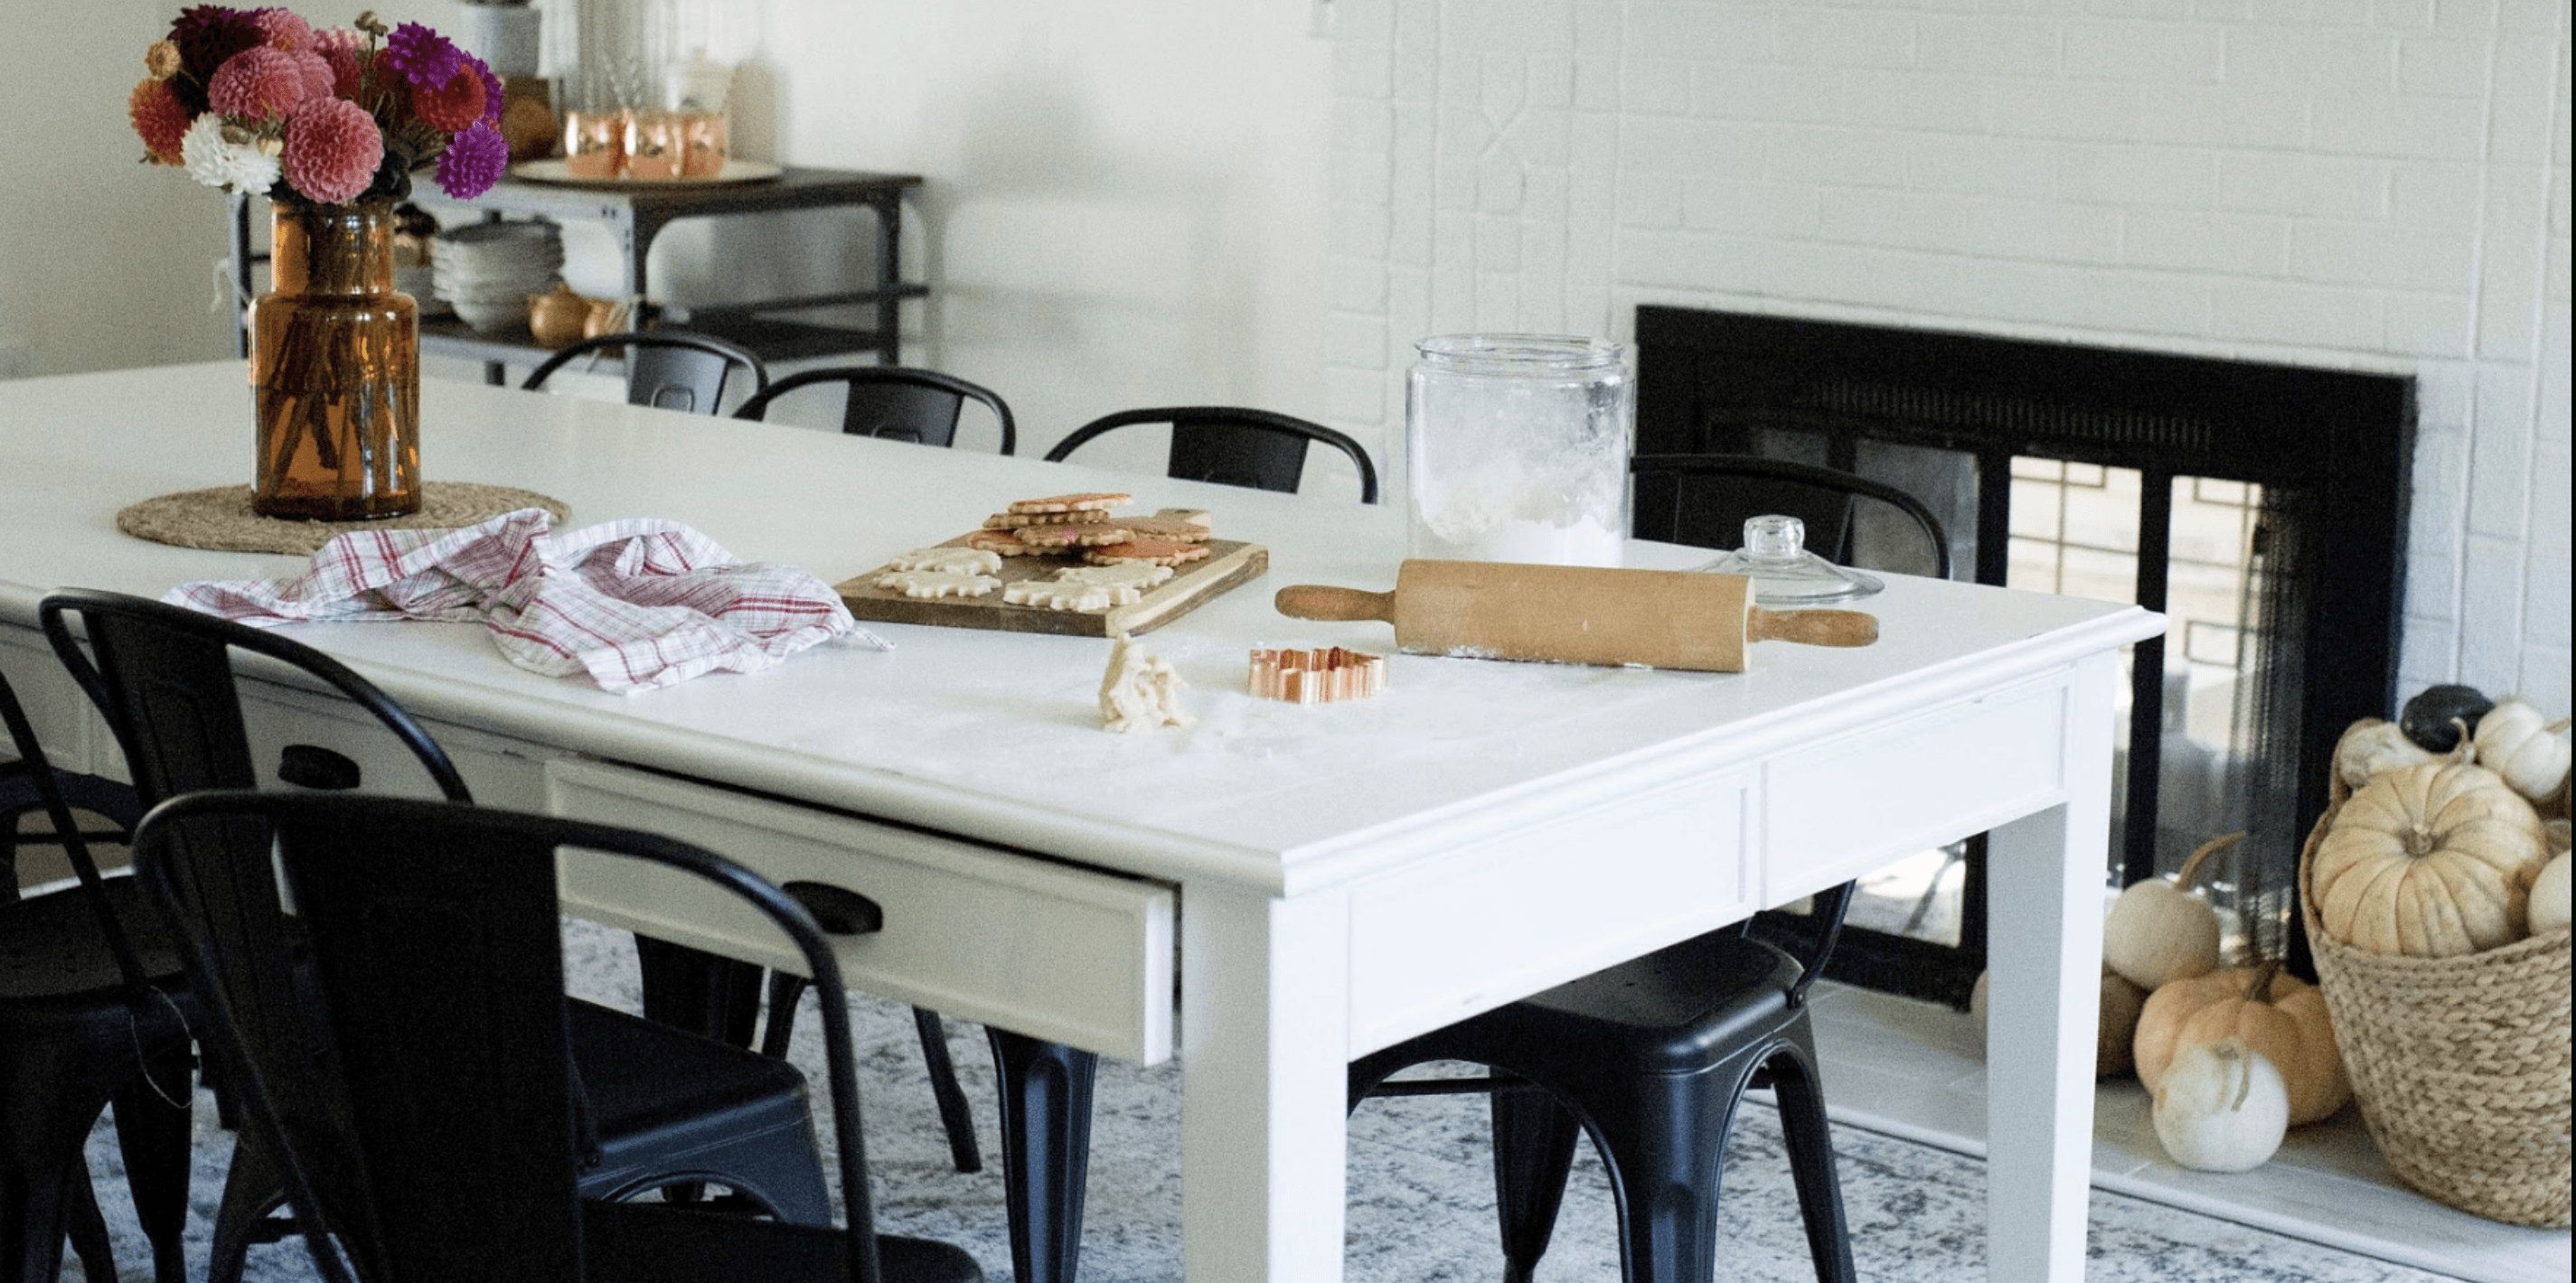 Most Recently Released Magnolia Home Breakfast Round Black Dining Tables Intended For Our Fixer Upper: Dining Room Edition – How You Live Blog (View 19 of 25)